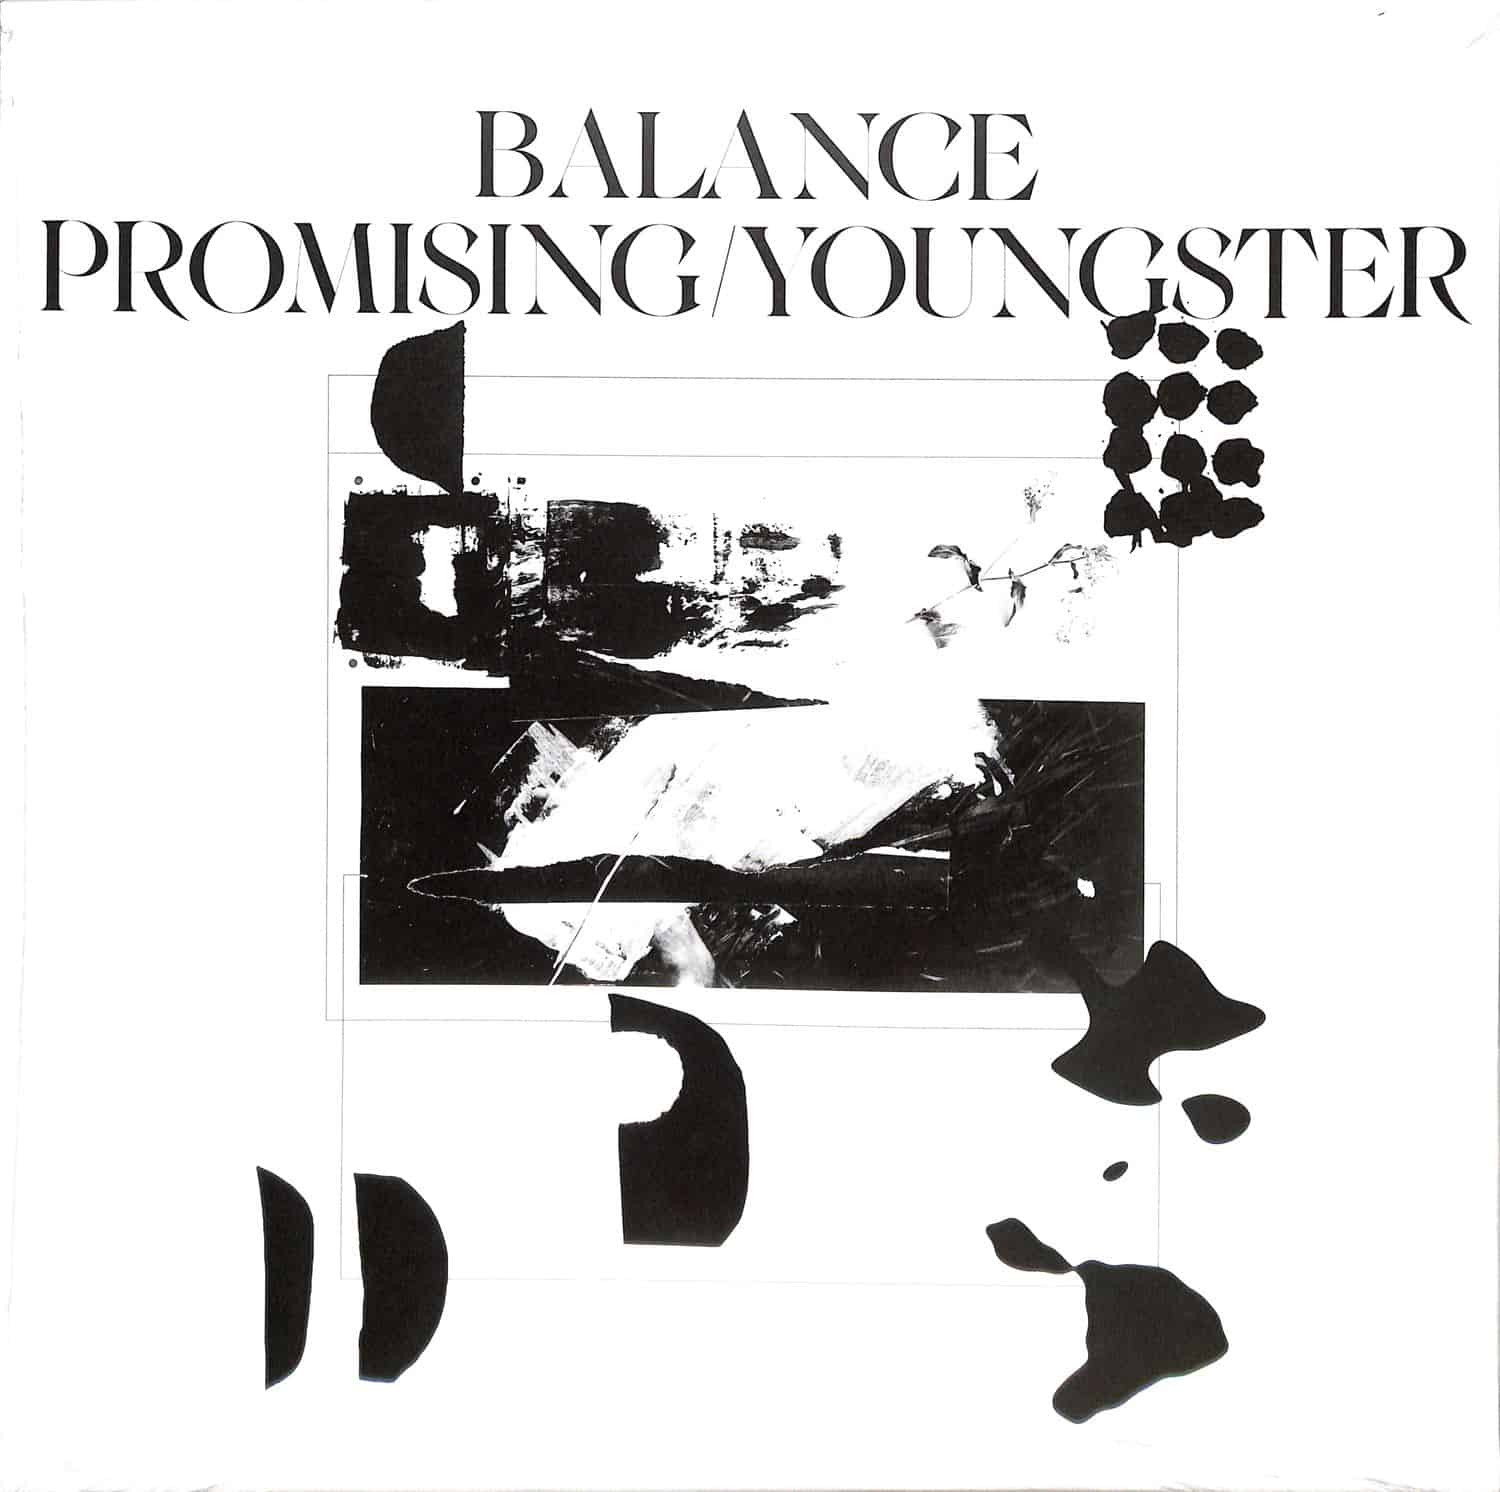 Promising/Youngster - BALANCE EP